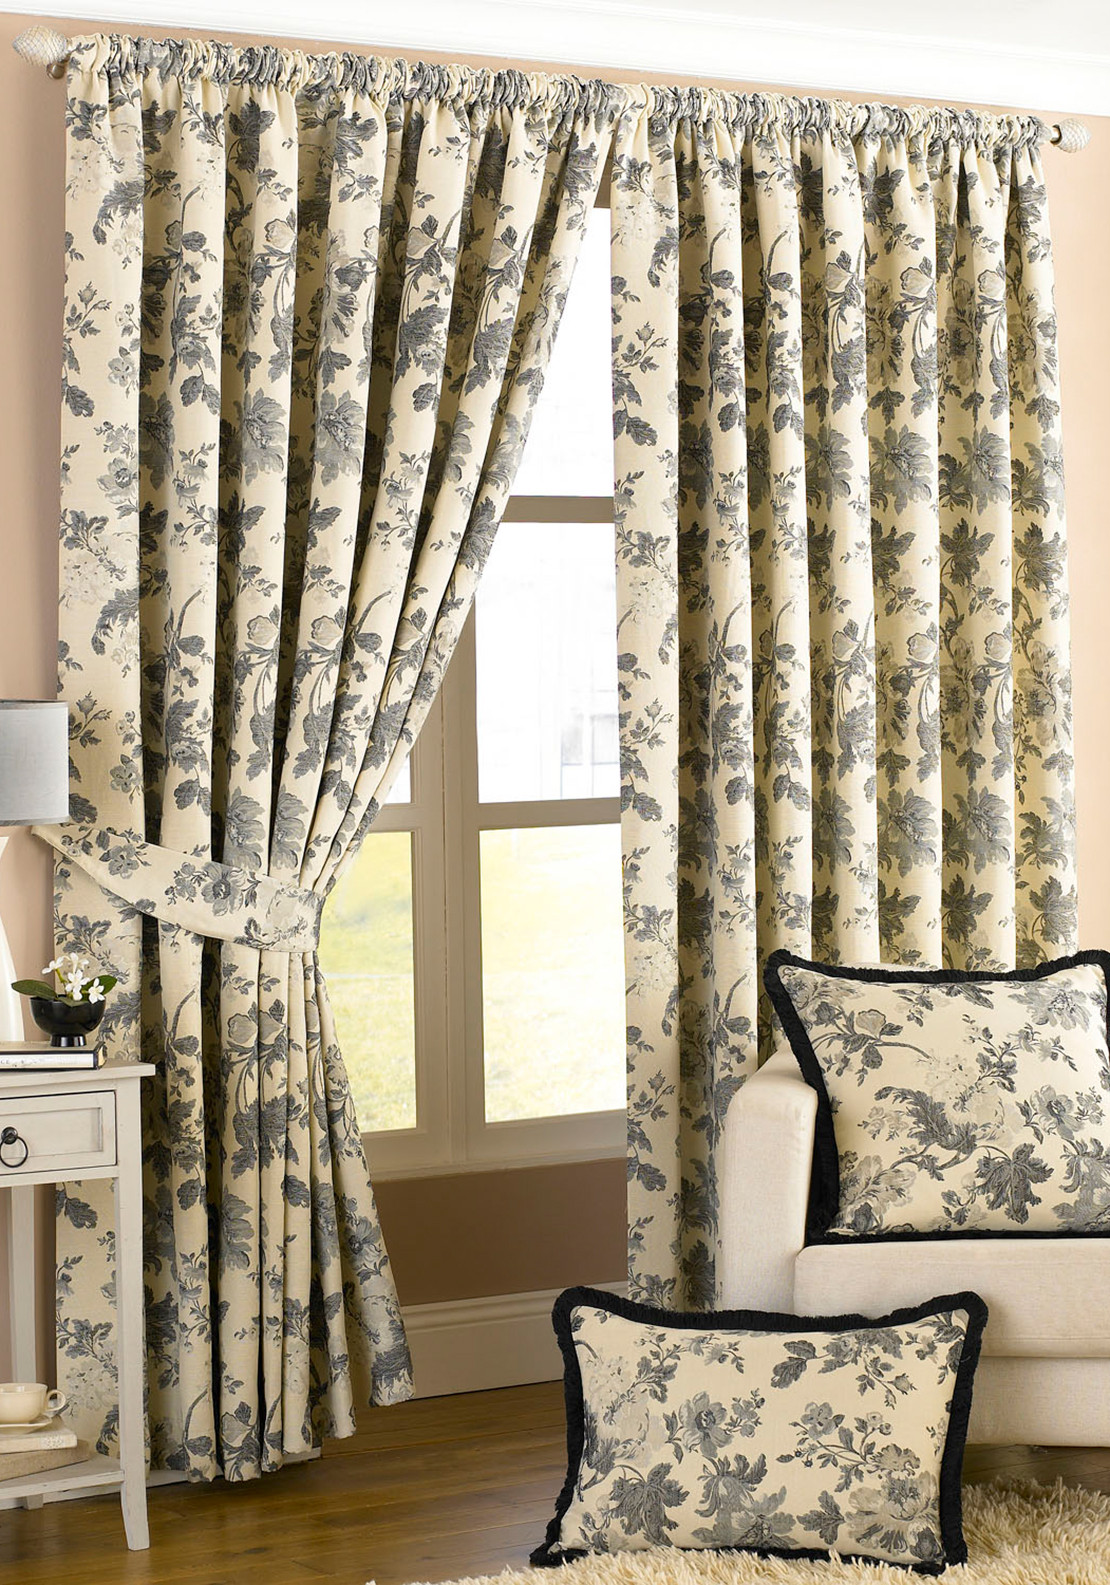 Paoletti Berkshire Floral Print Fully Lined Eyelet Curtains, Ivory